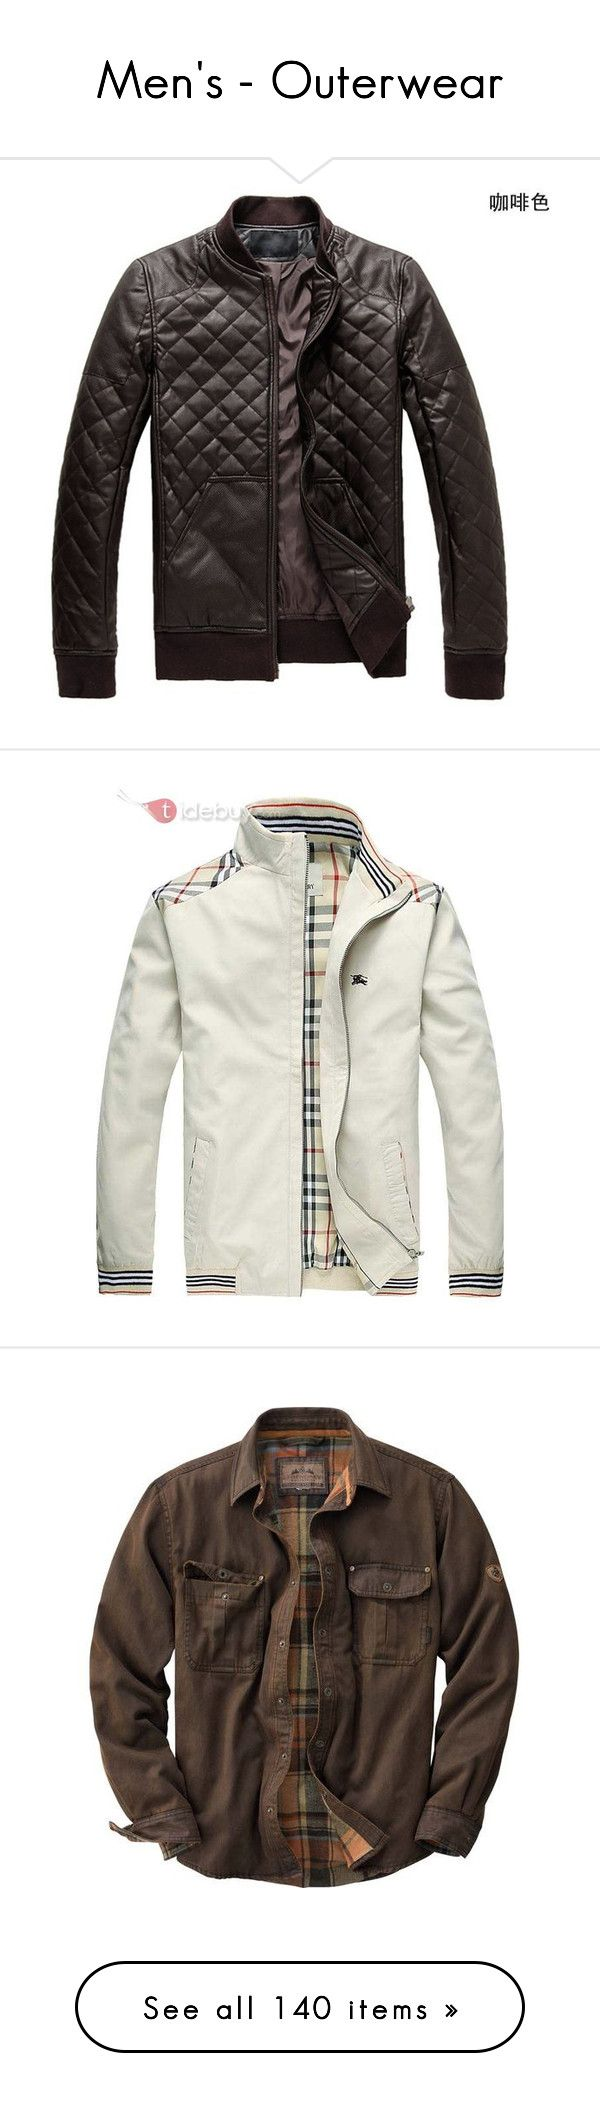 """""""Men's - Outerwear"""" by jacci0528 ❤ liked on Polyvore featuring mens, men's clothing, men's outerwear, men's coats, men, men's jackets, jackets, menswear, coats and blusas de frio masculina"""